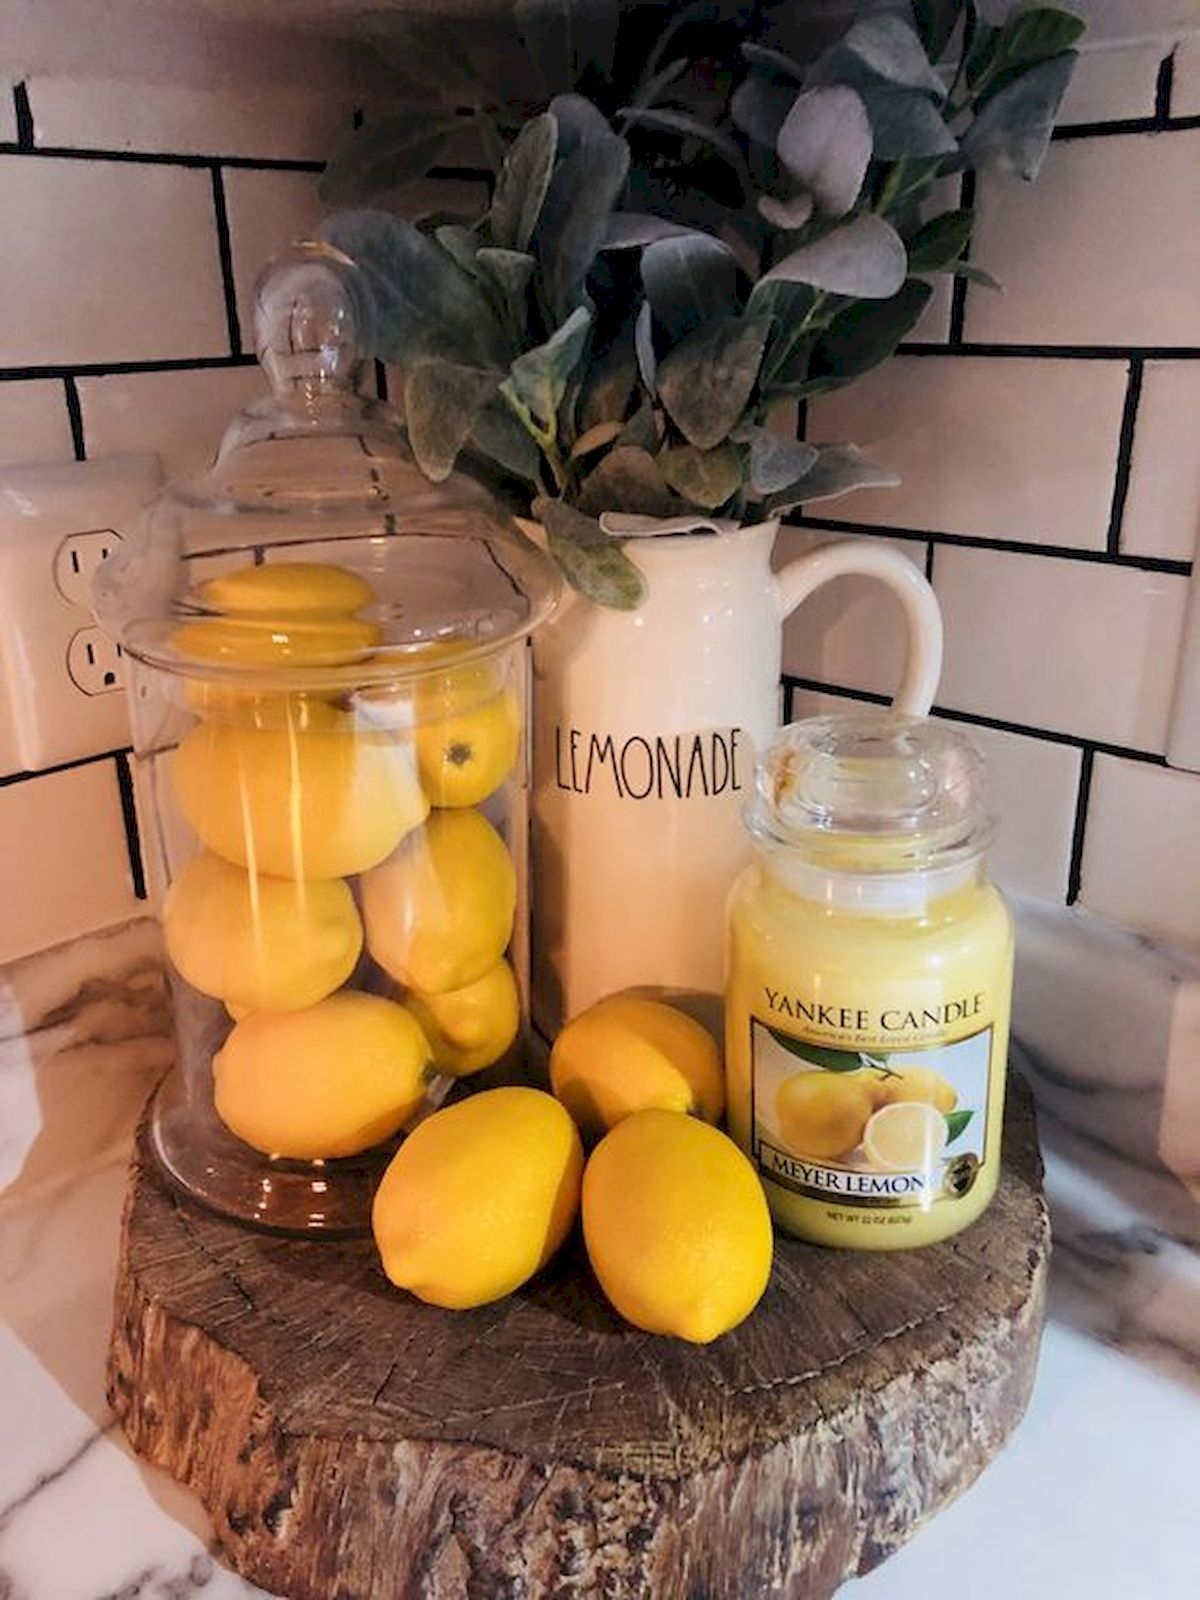 40 Favorite Farmhouse Summer Decor Ideas - CoachDecor.com